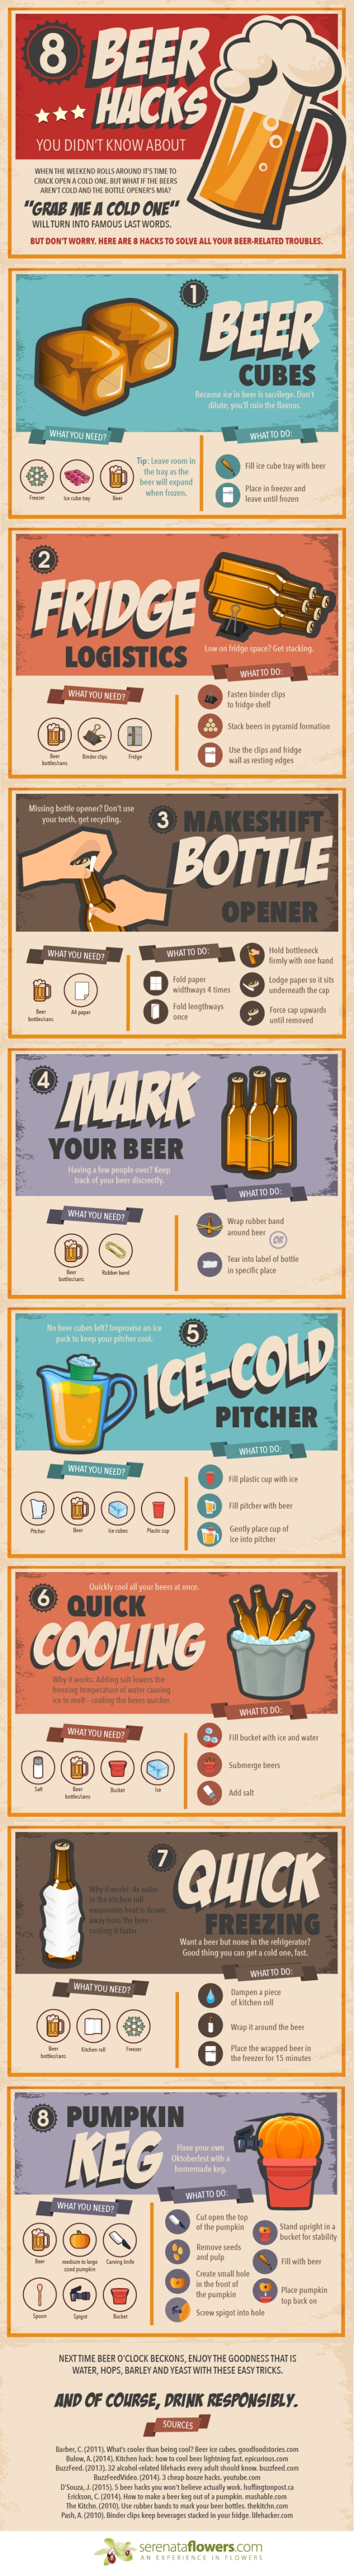 8-Beer-hacks-you-didnt-know-about-V1